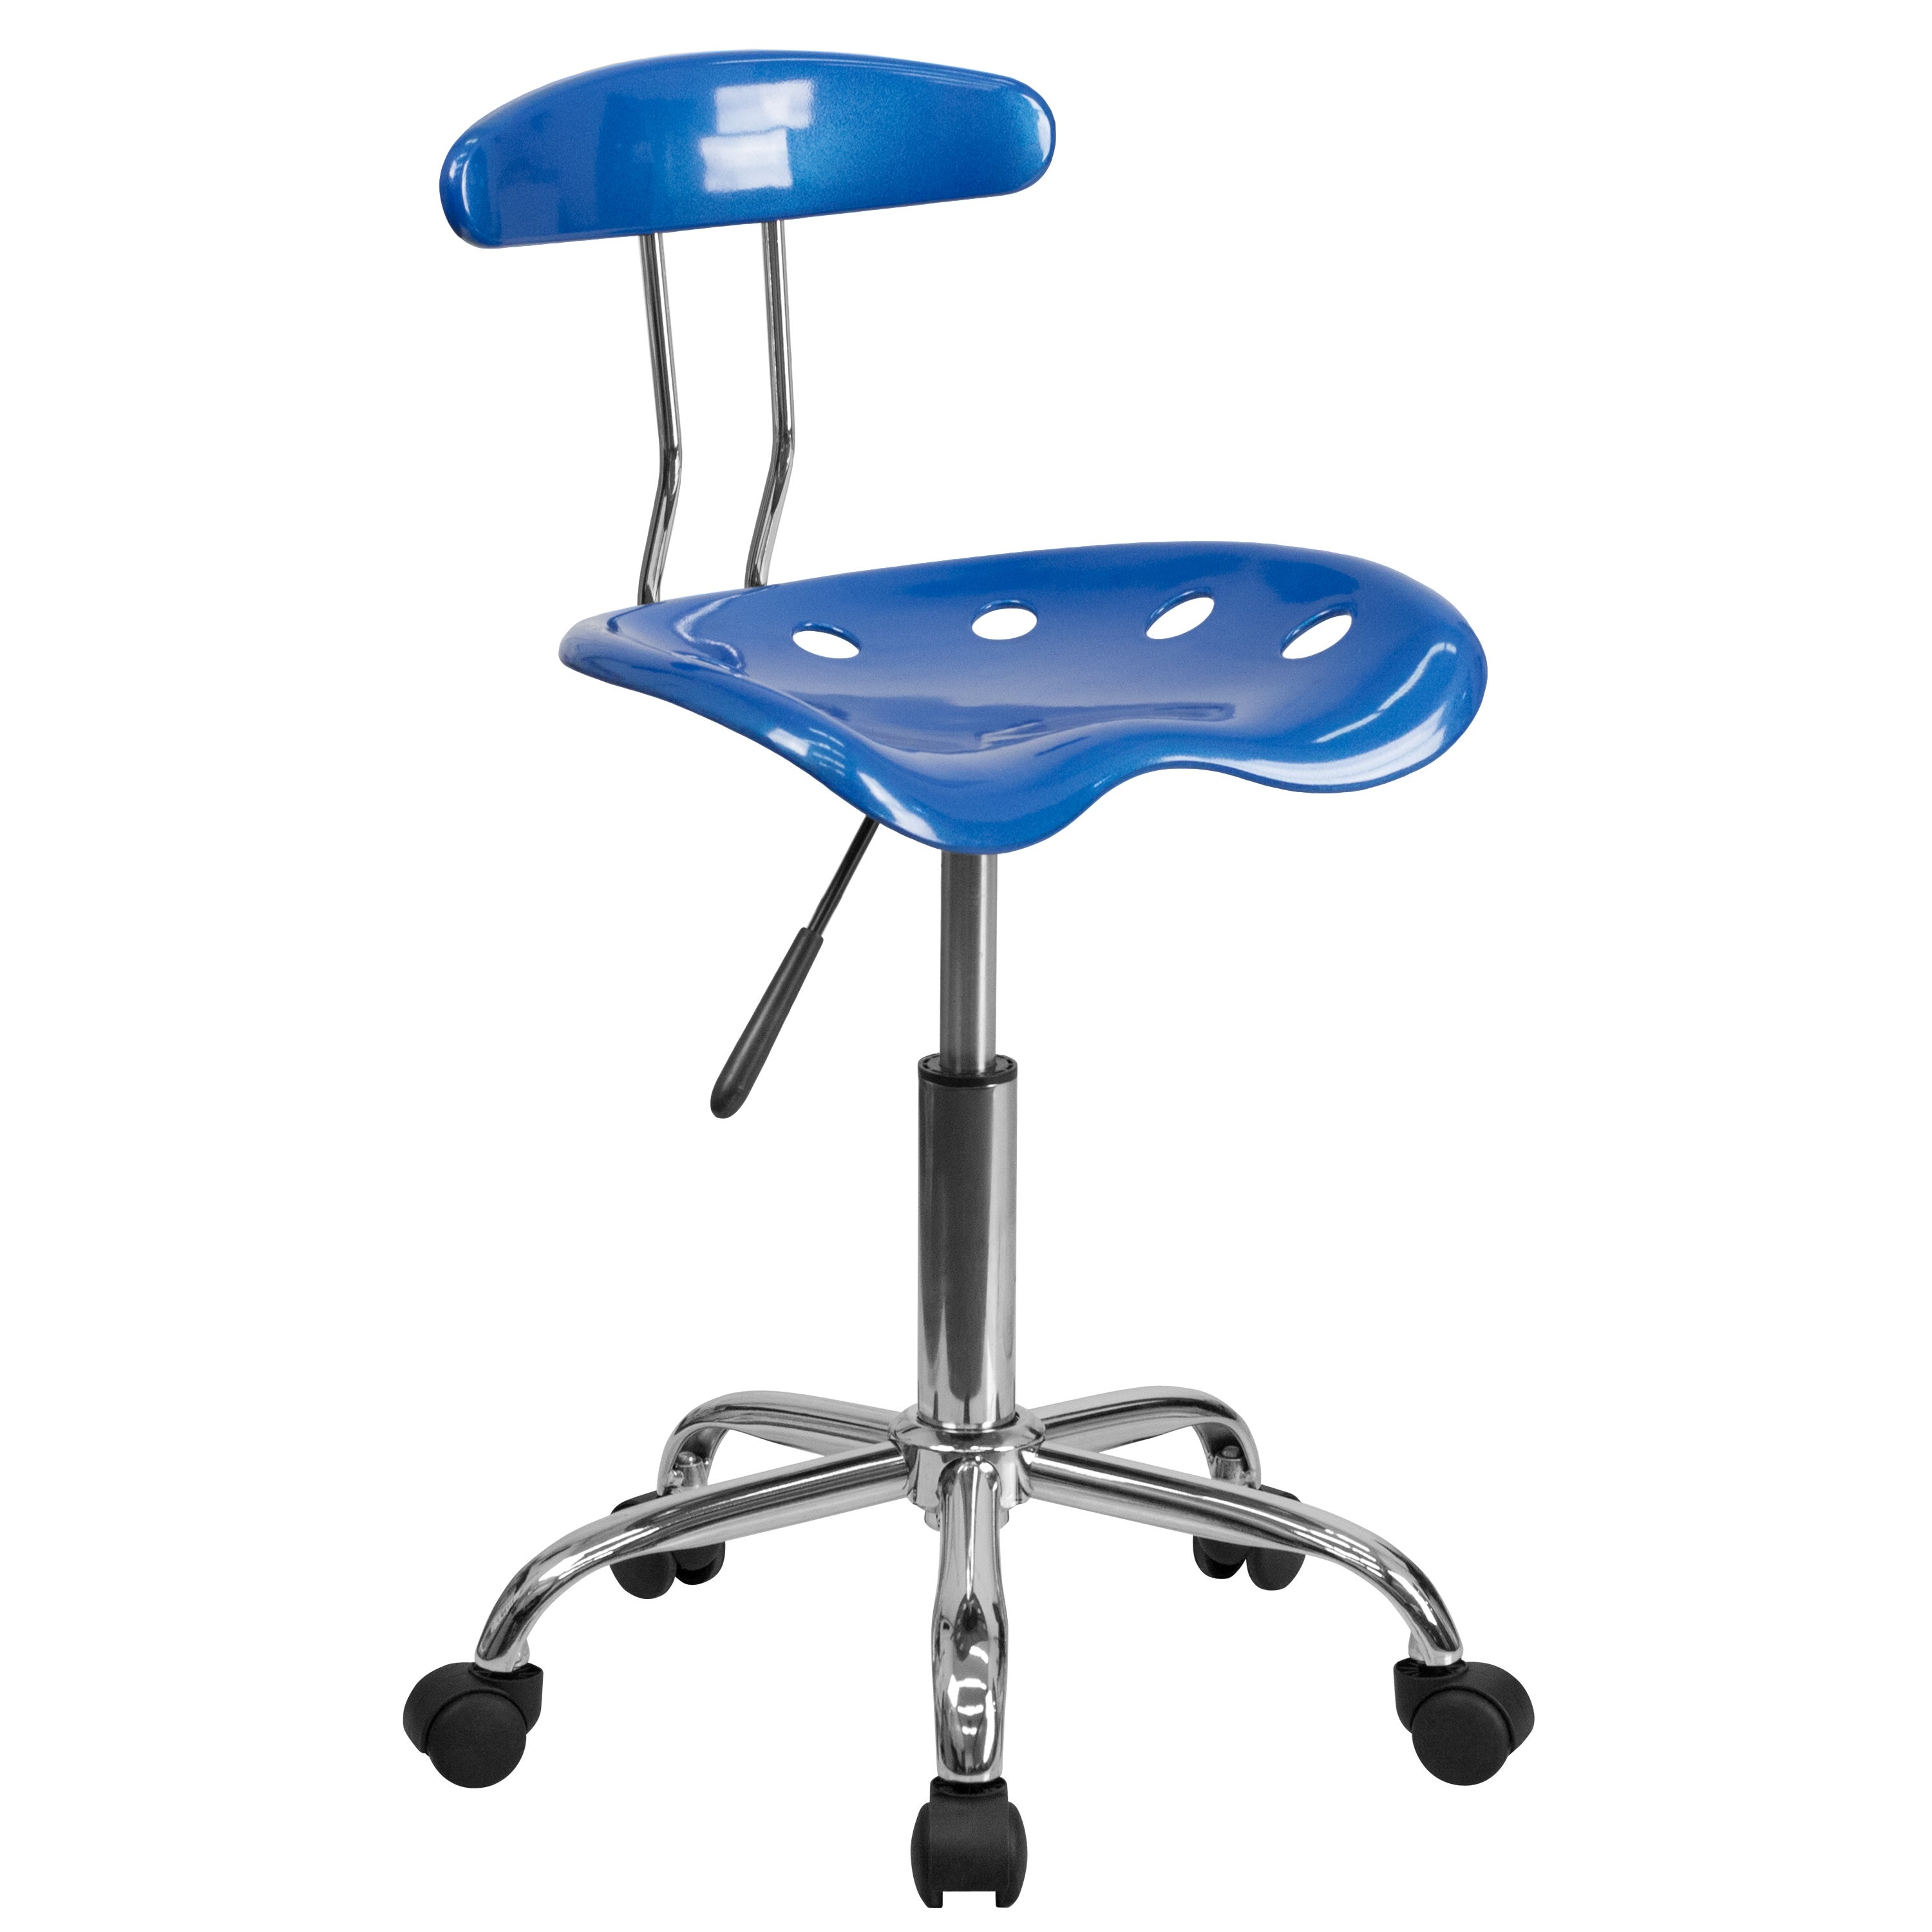 Saddle Bright Blue Adjustable Home Office Chair with Trac...